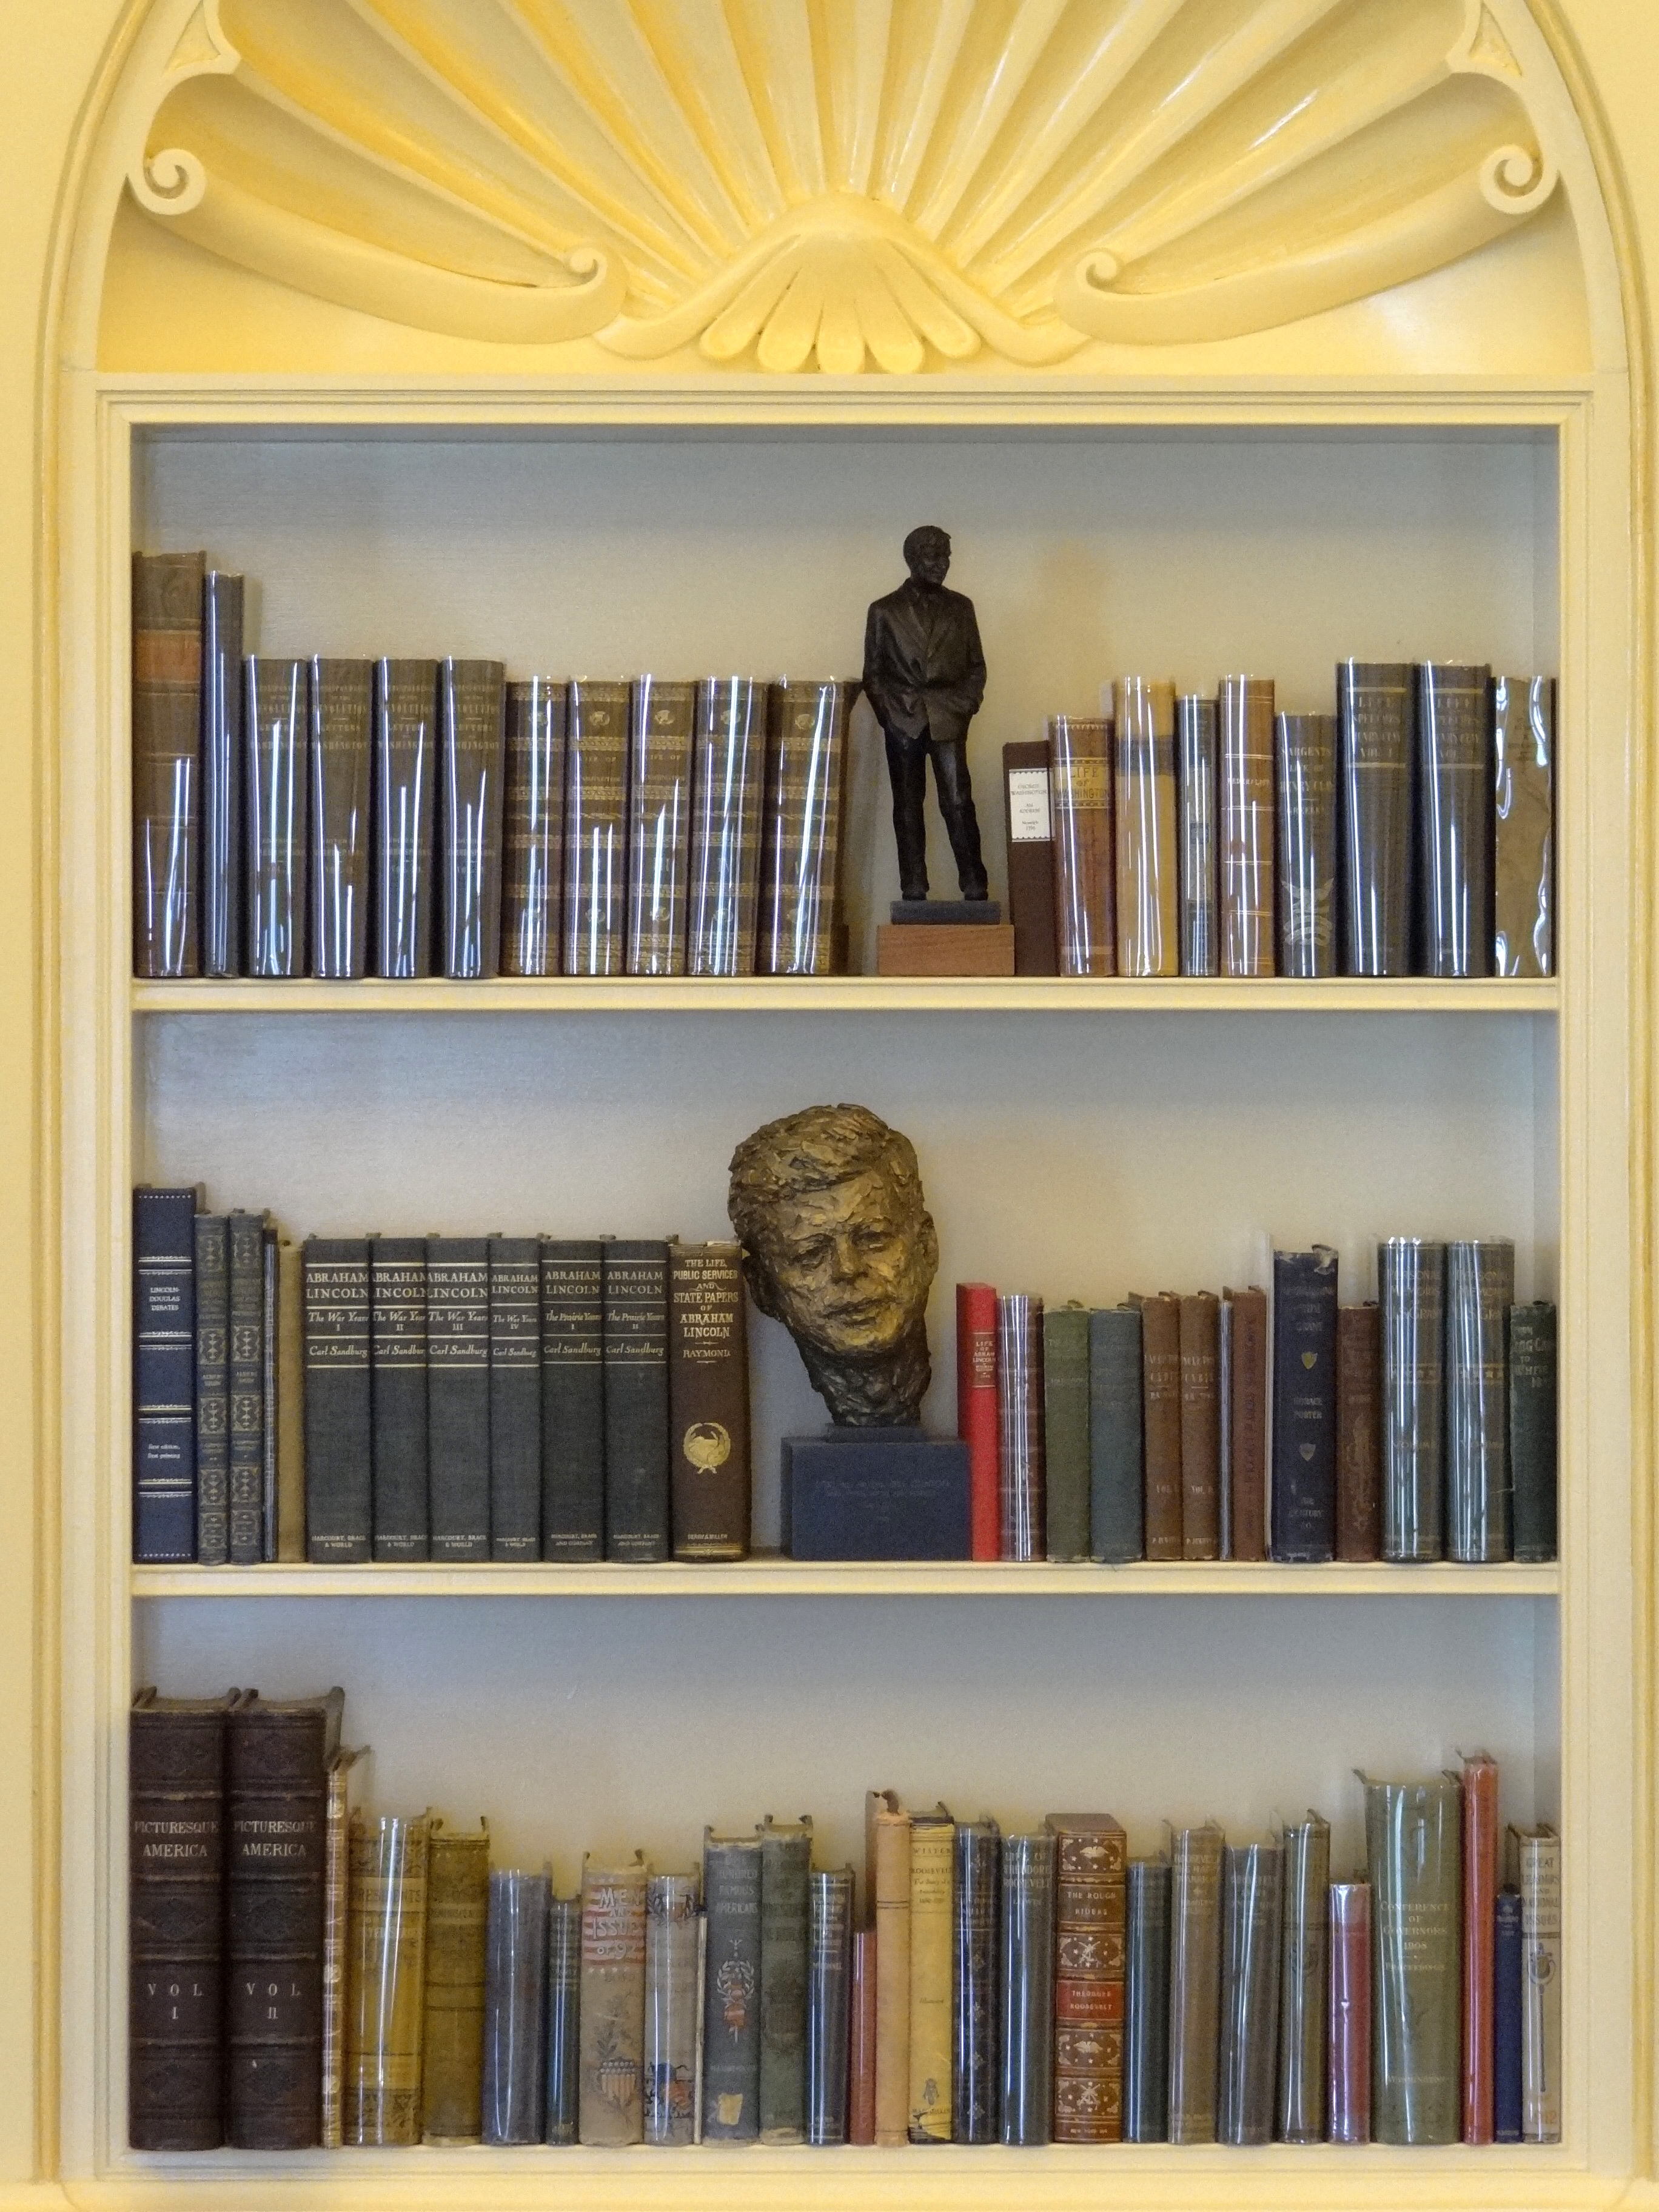 FileBookcase in Recreation of Oval Office Clinton Presidential